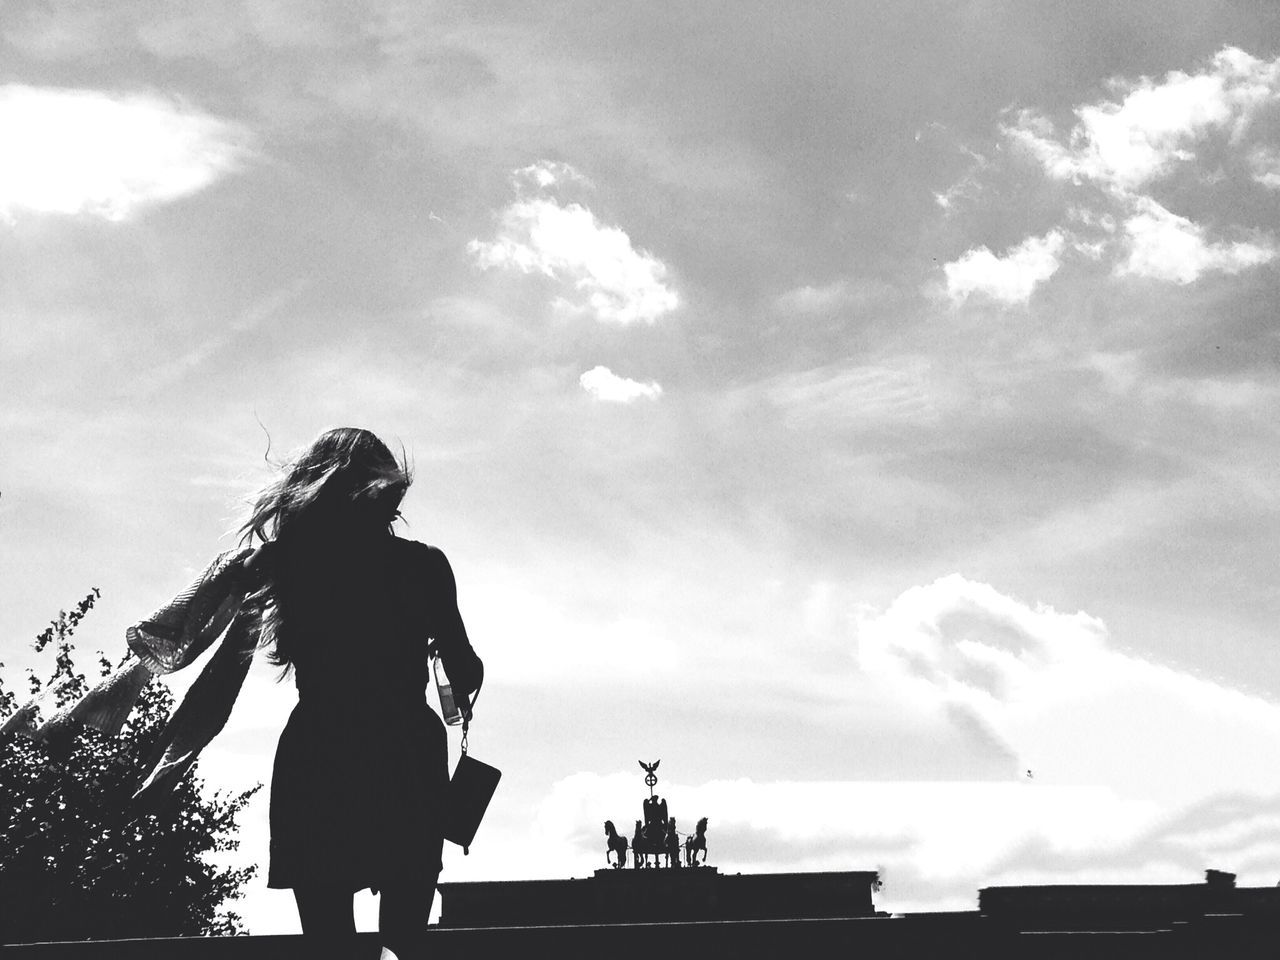 Silhouette woman walking against the sky